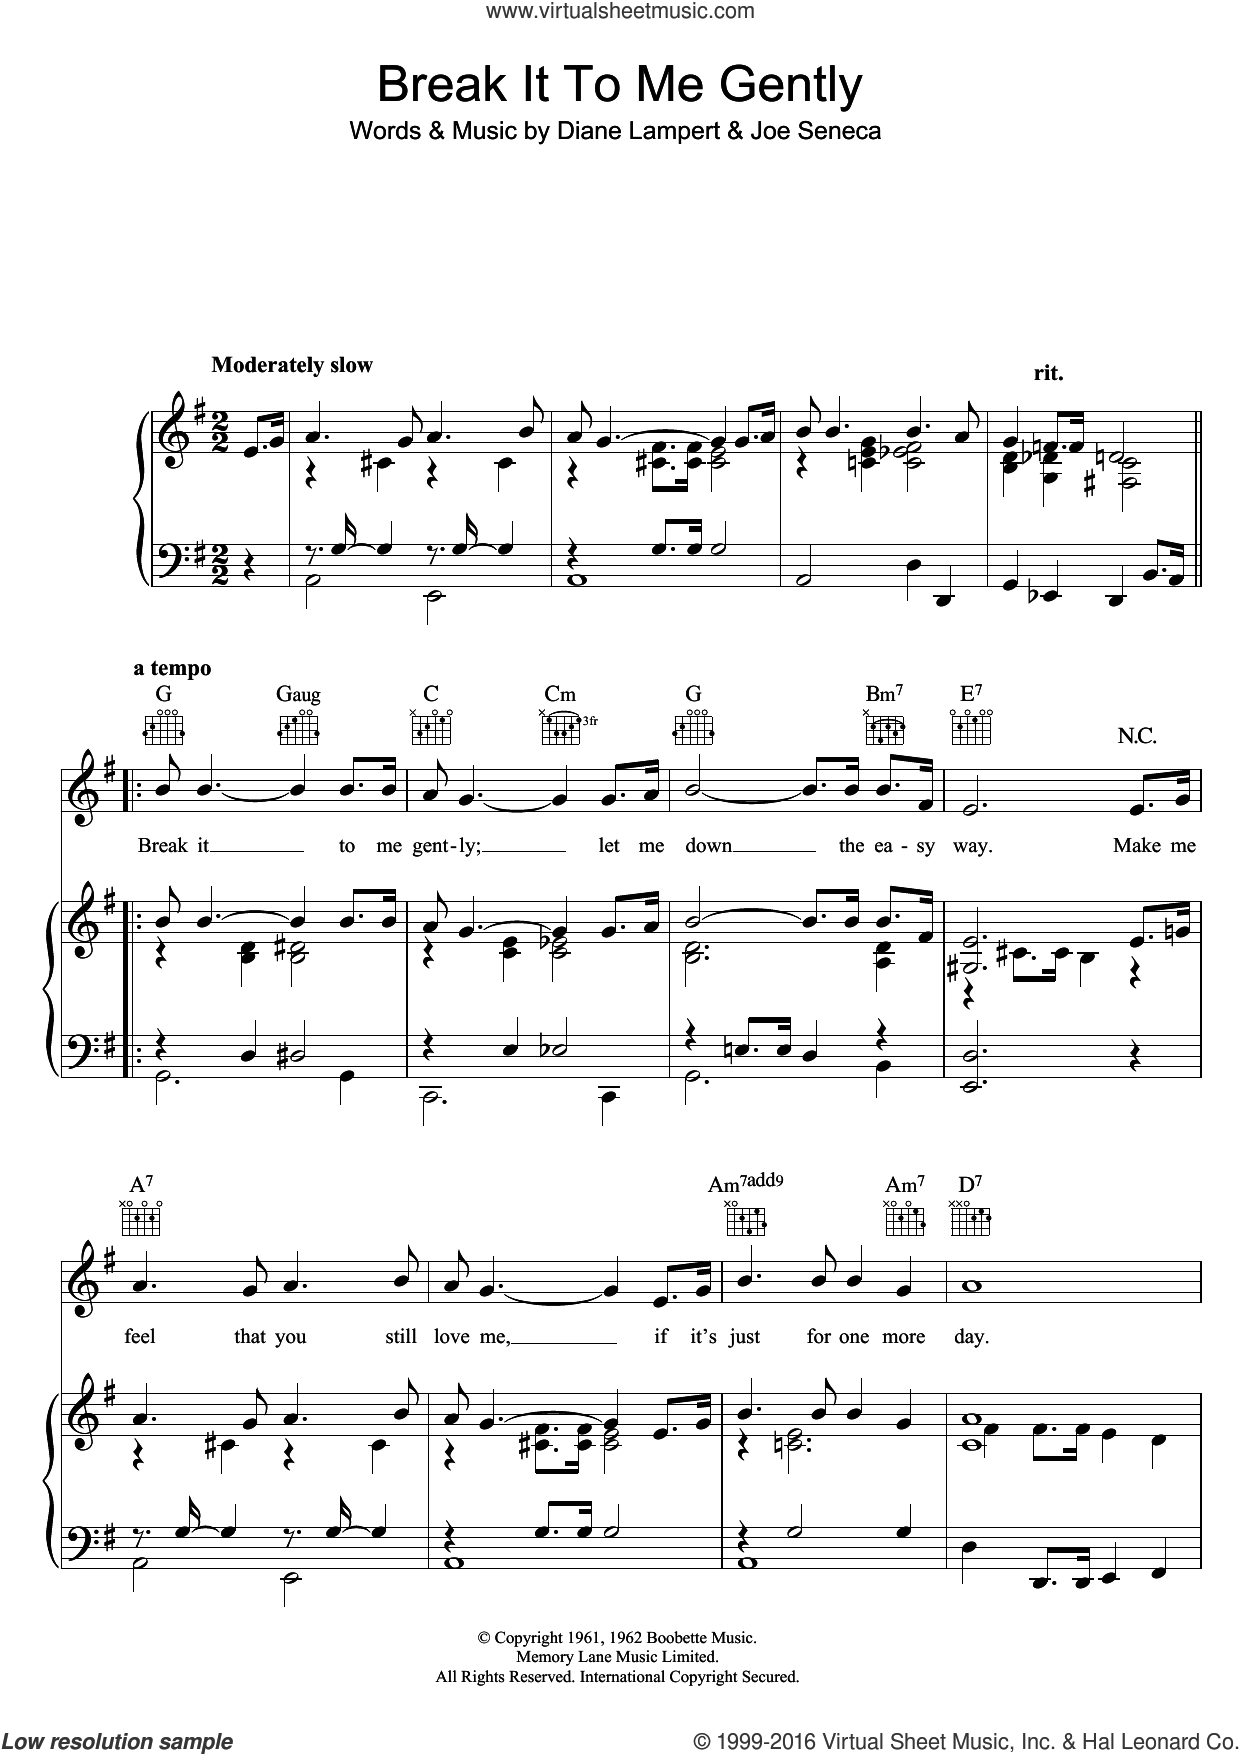 Break It To Me Gently sheet music for voice, piano or guitar by Diane Lampert, Brenda Lee and Joe Seneca. Score Image Preview.